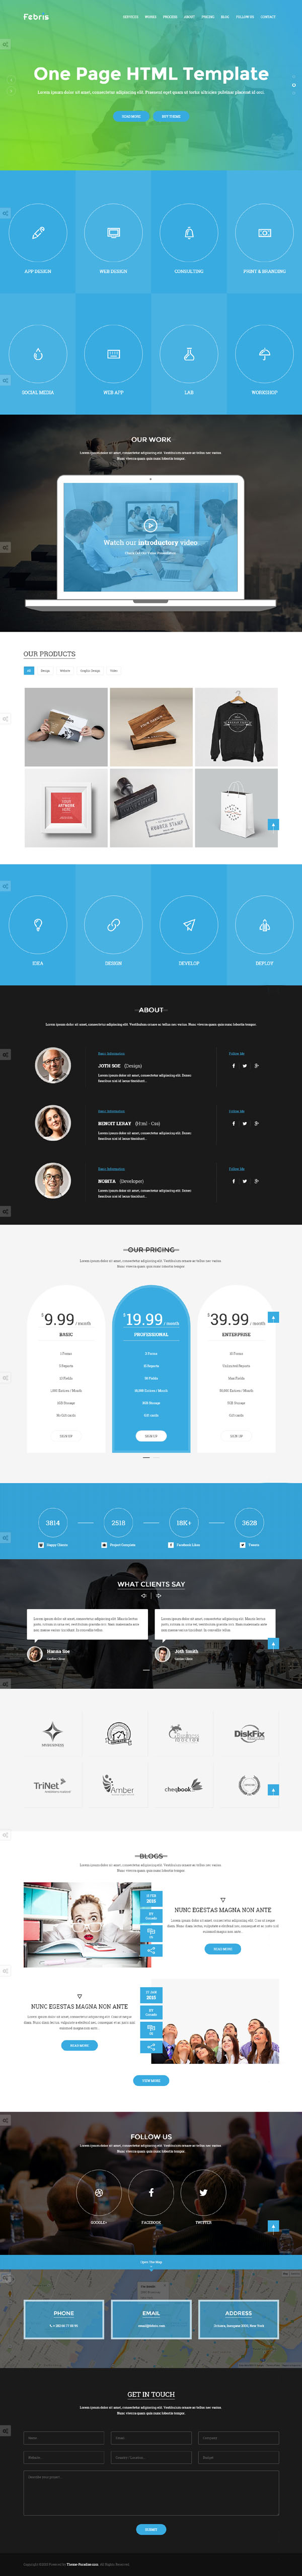 New Responsive HTML Web Templates Design Graphic Design Junction - Html5 web page template